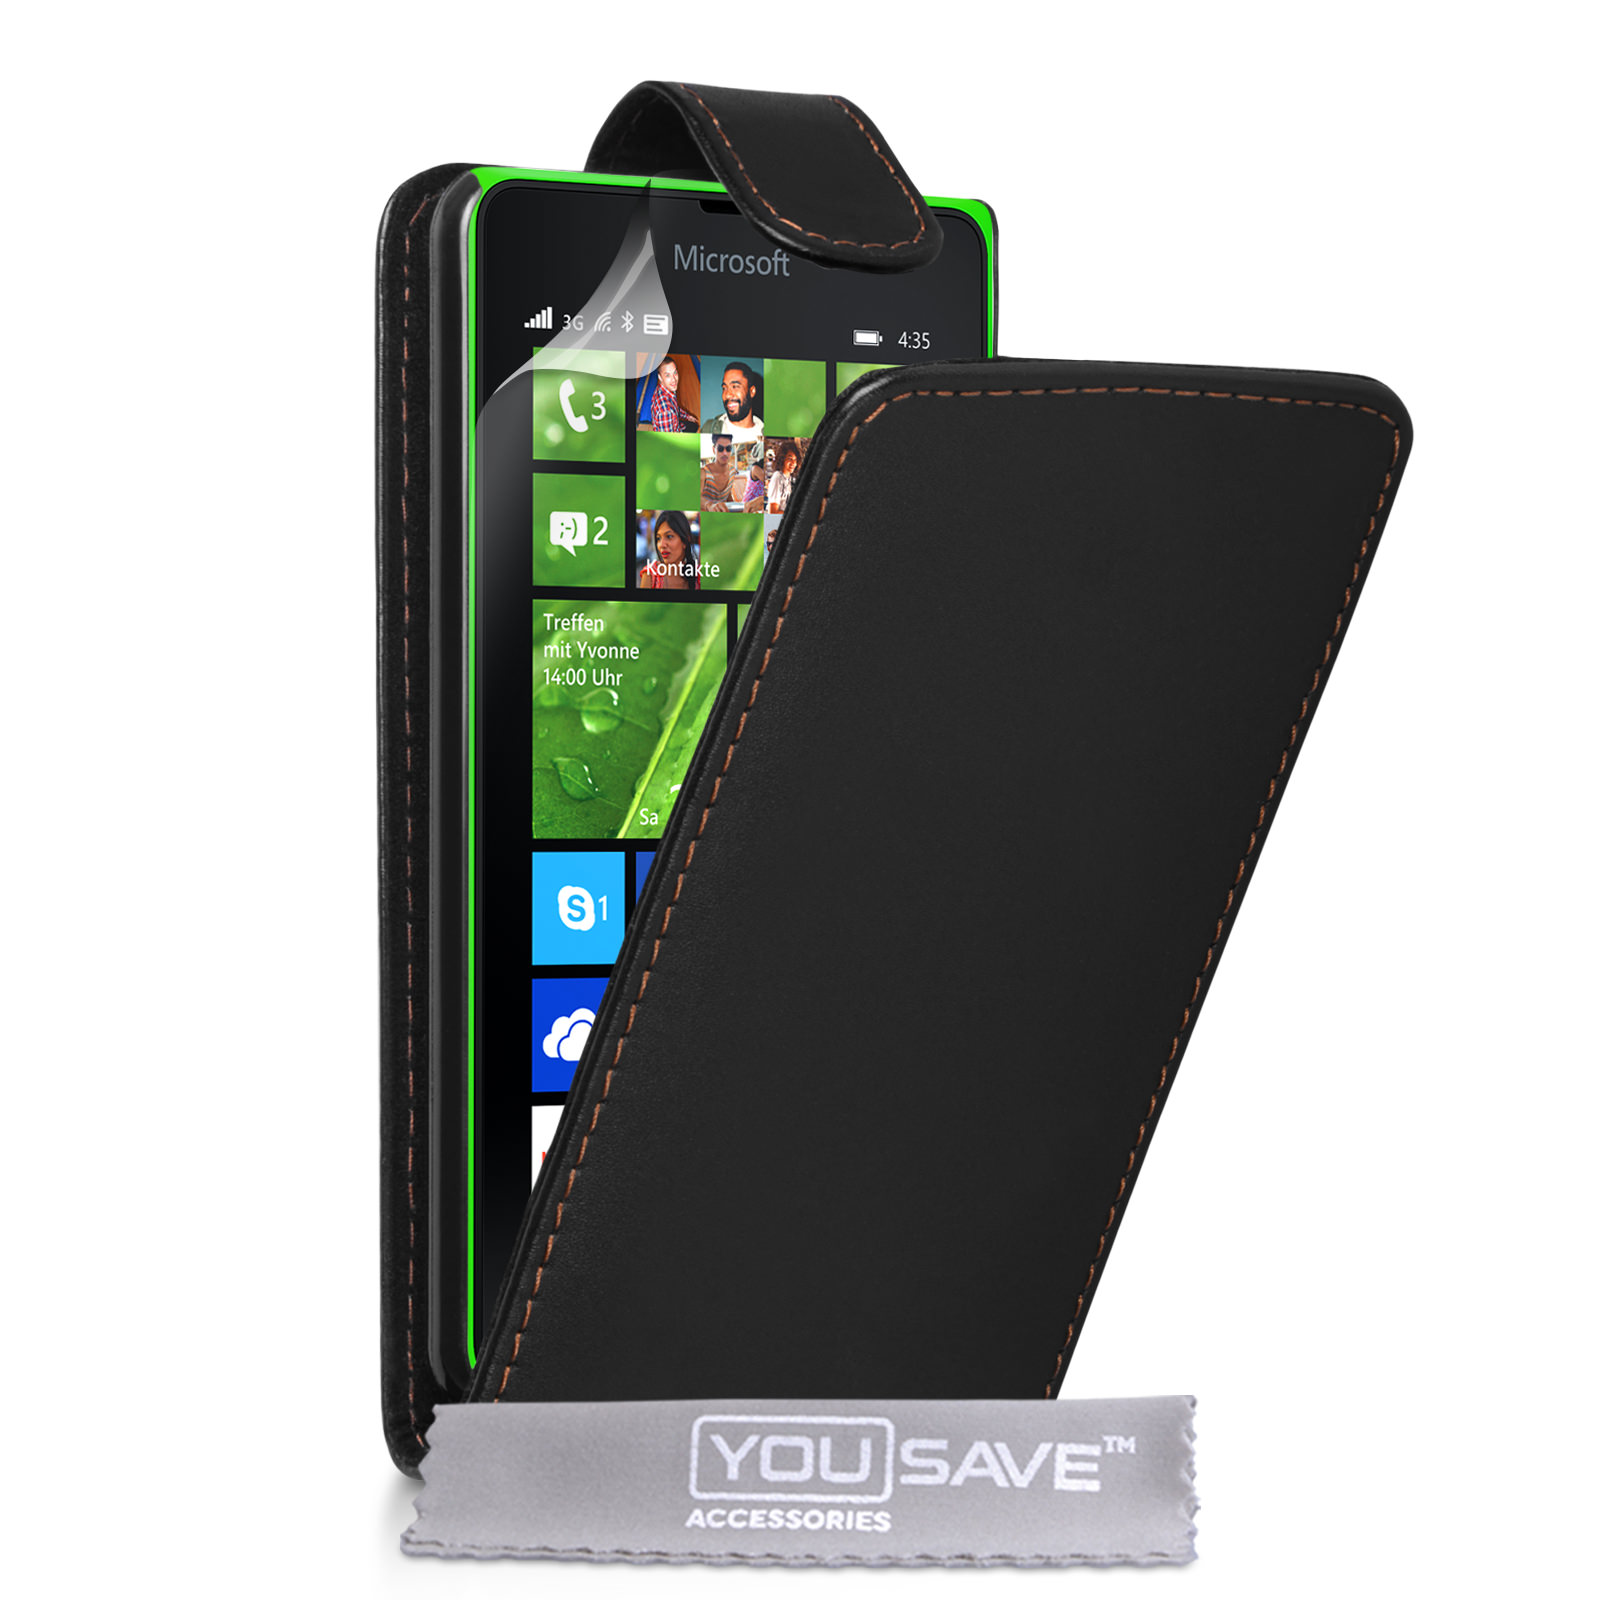 YouSave Microsoft Lumia 435 Leather-Effect Flip Case - Black